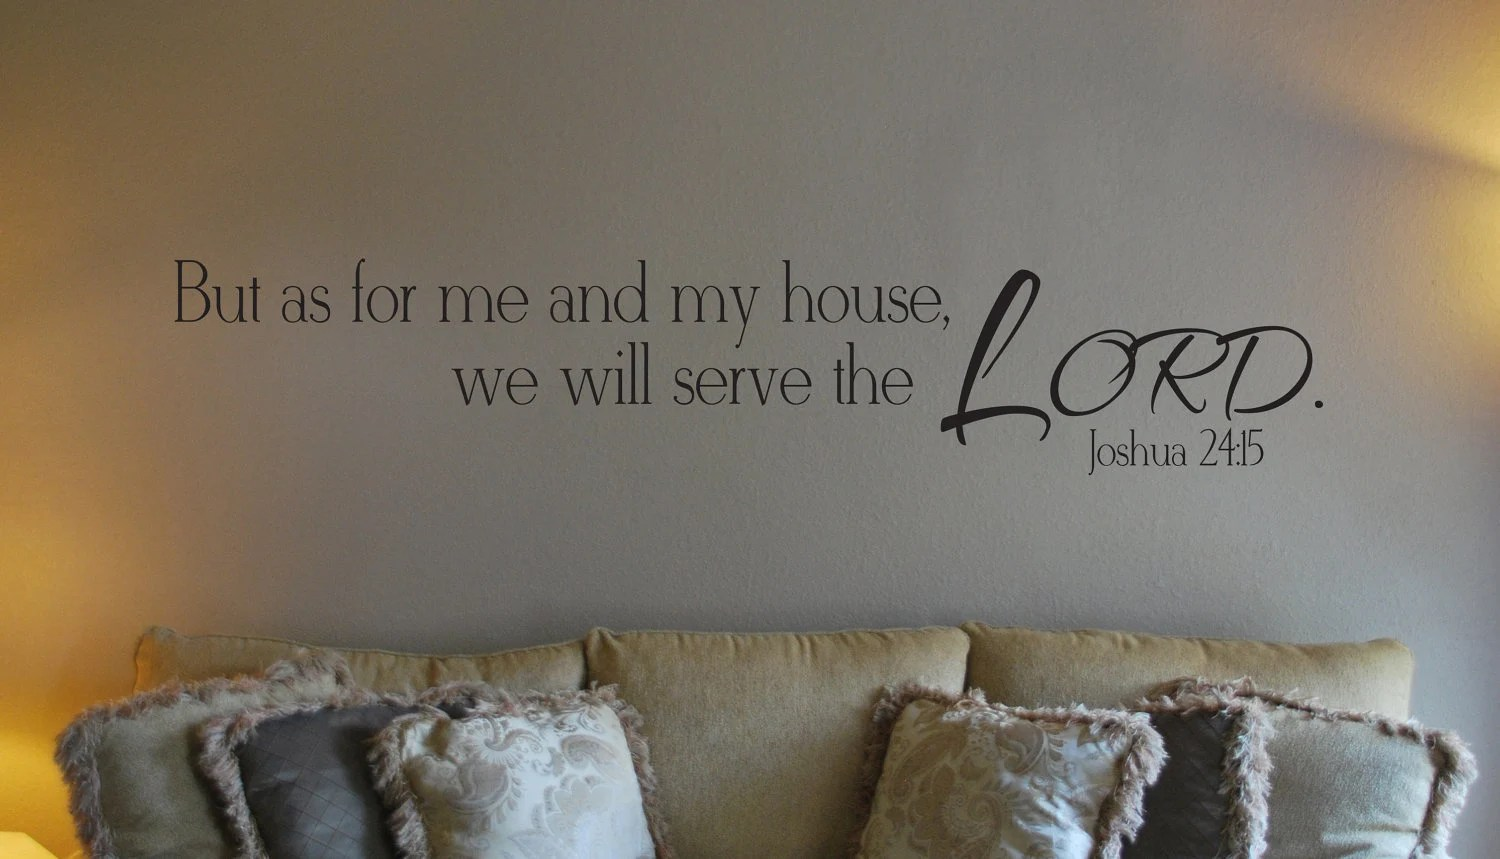 And House Will 15 Serve My We Lord Me Joshua 24